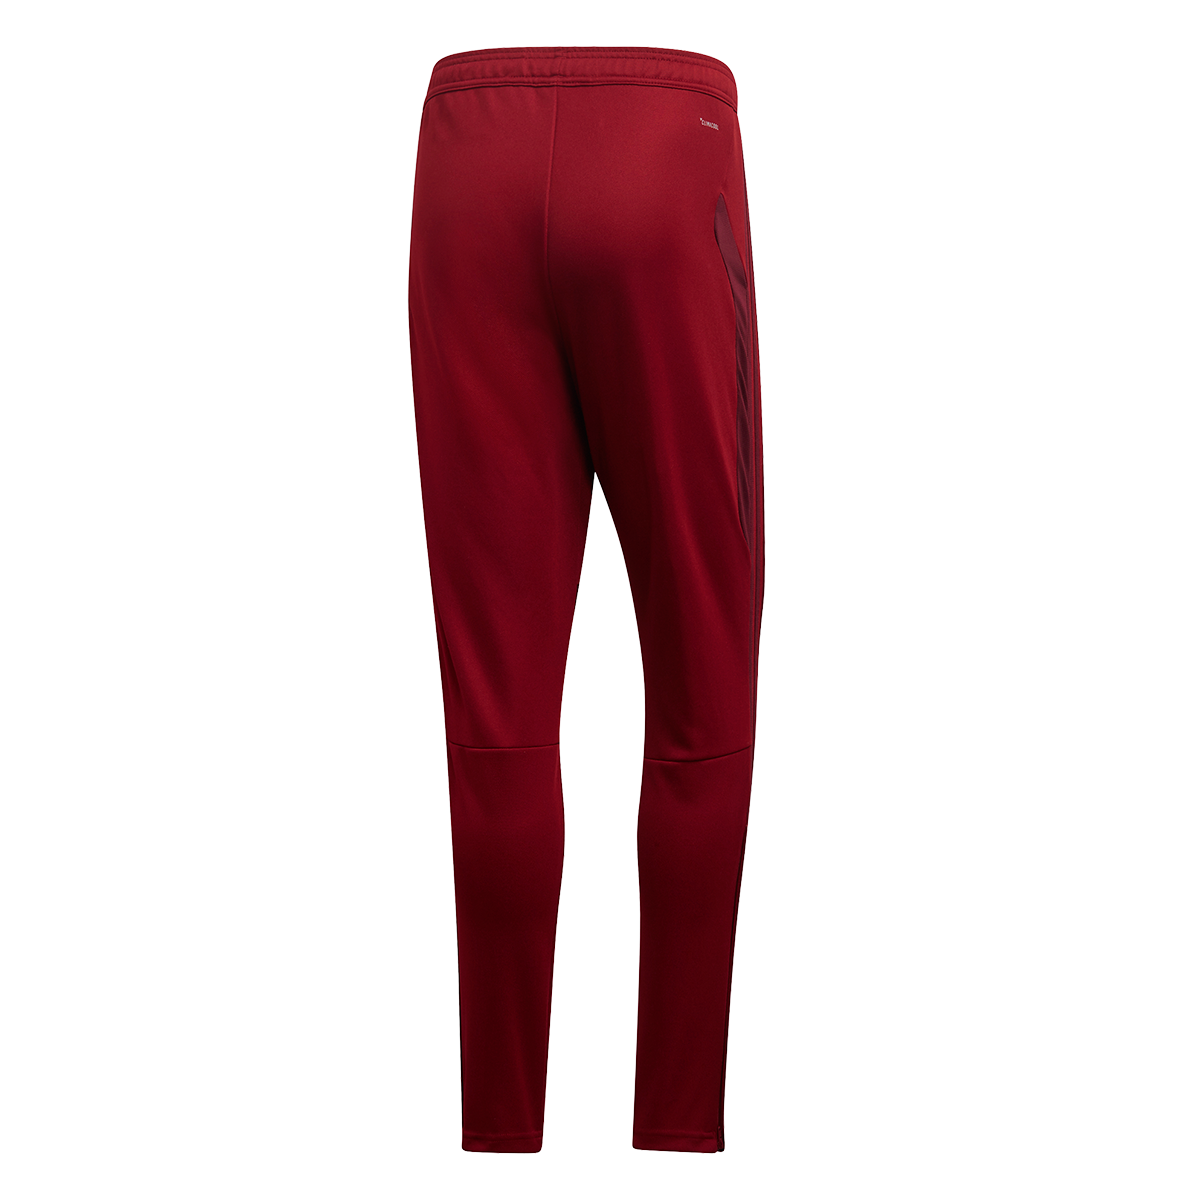 Descompostura Labor Costoso  Long pants adidas River Plate Training 2019-2020 Collegiate burgundy -  Football store Fútbol Emotion